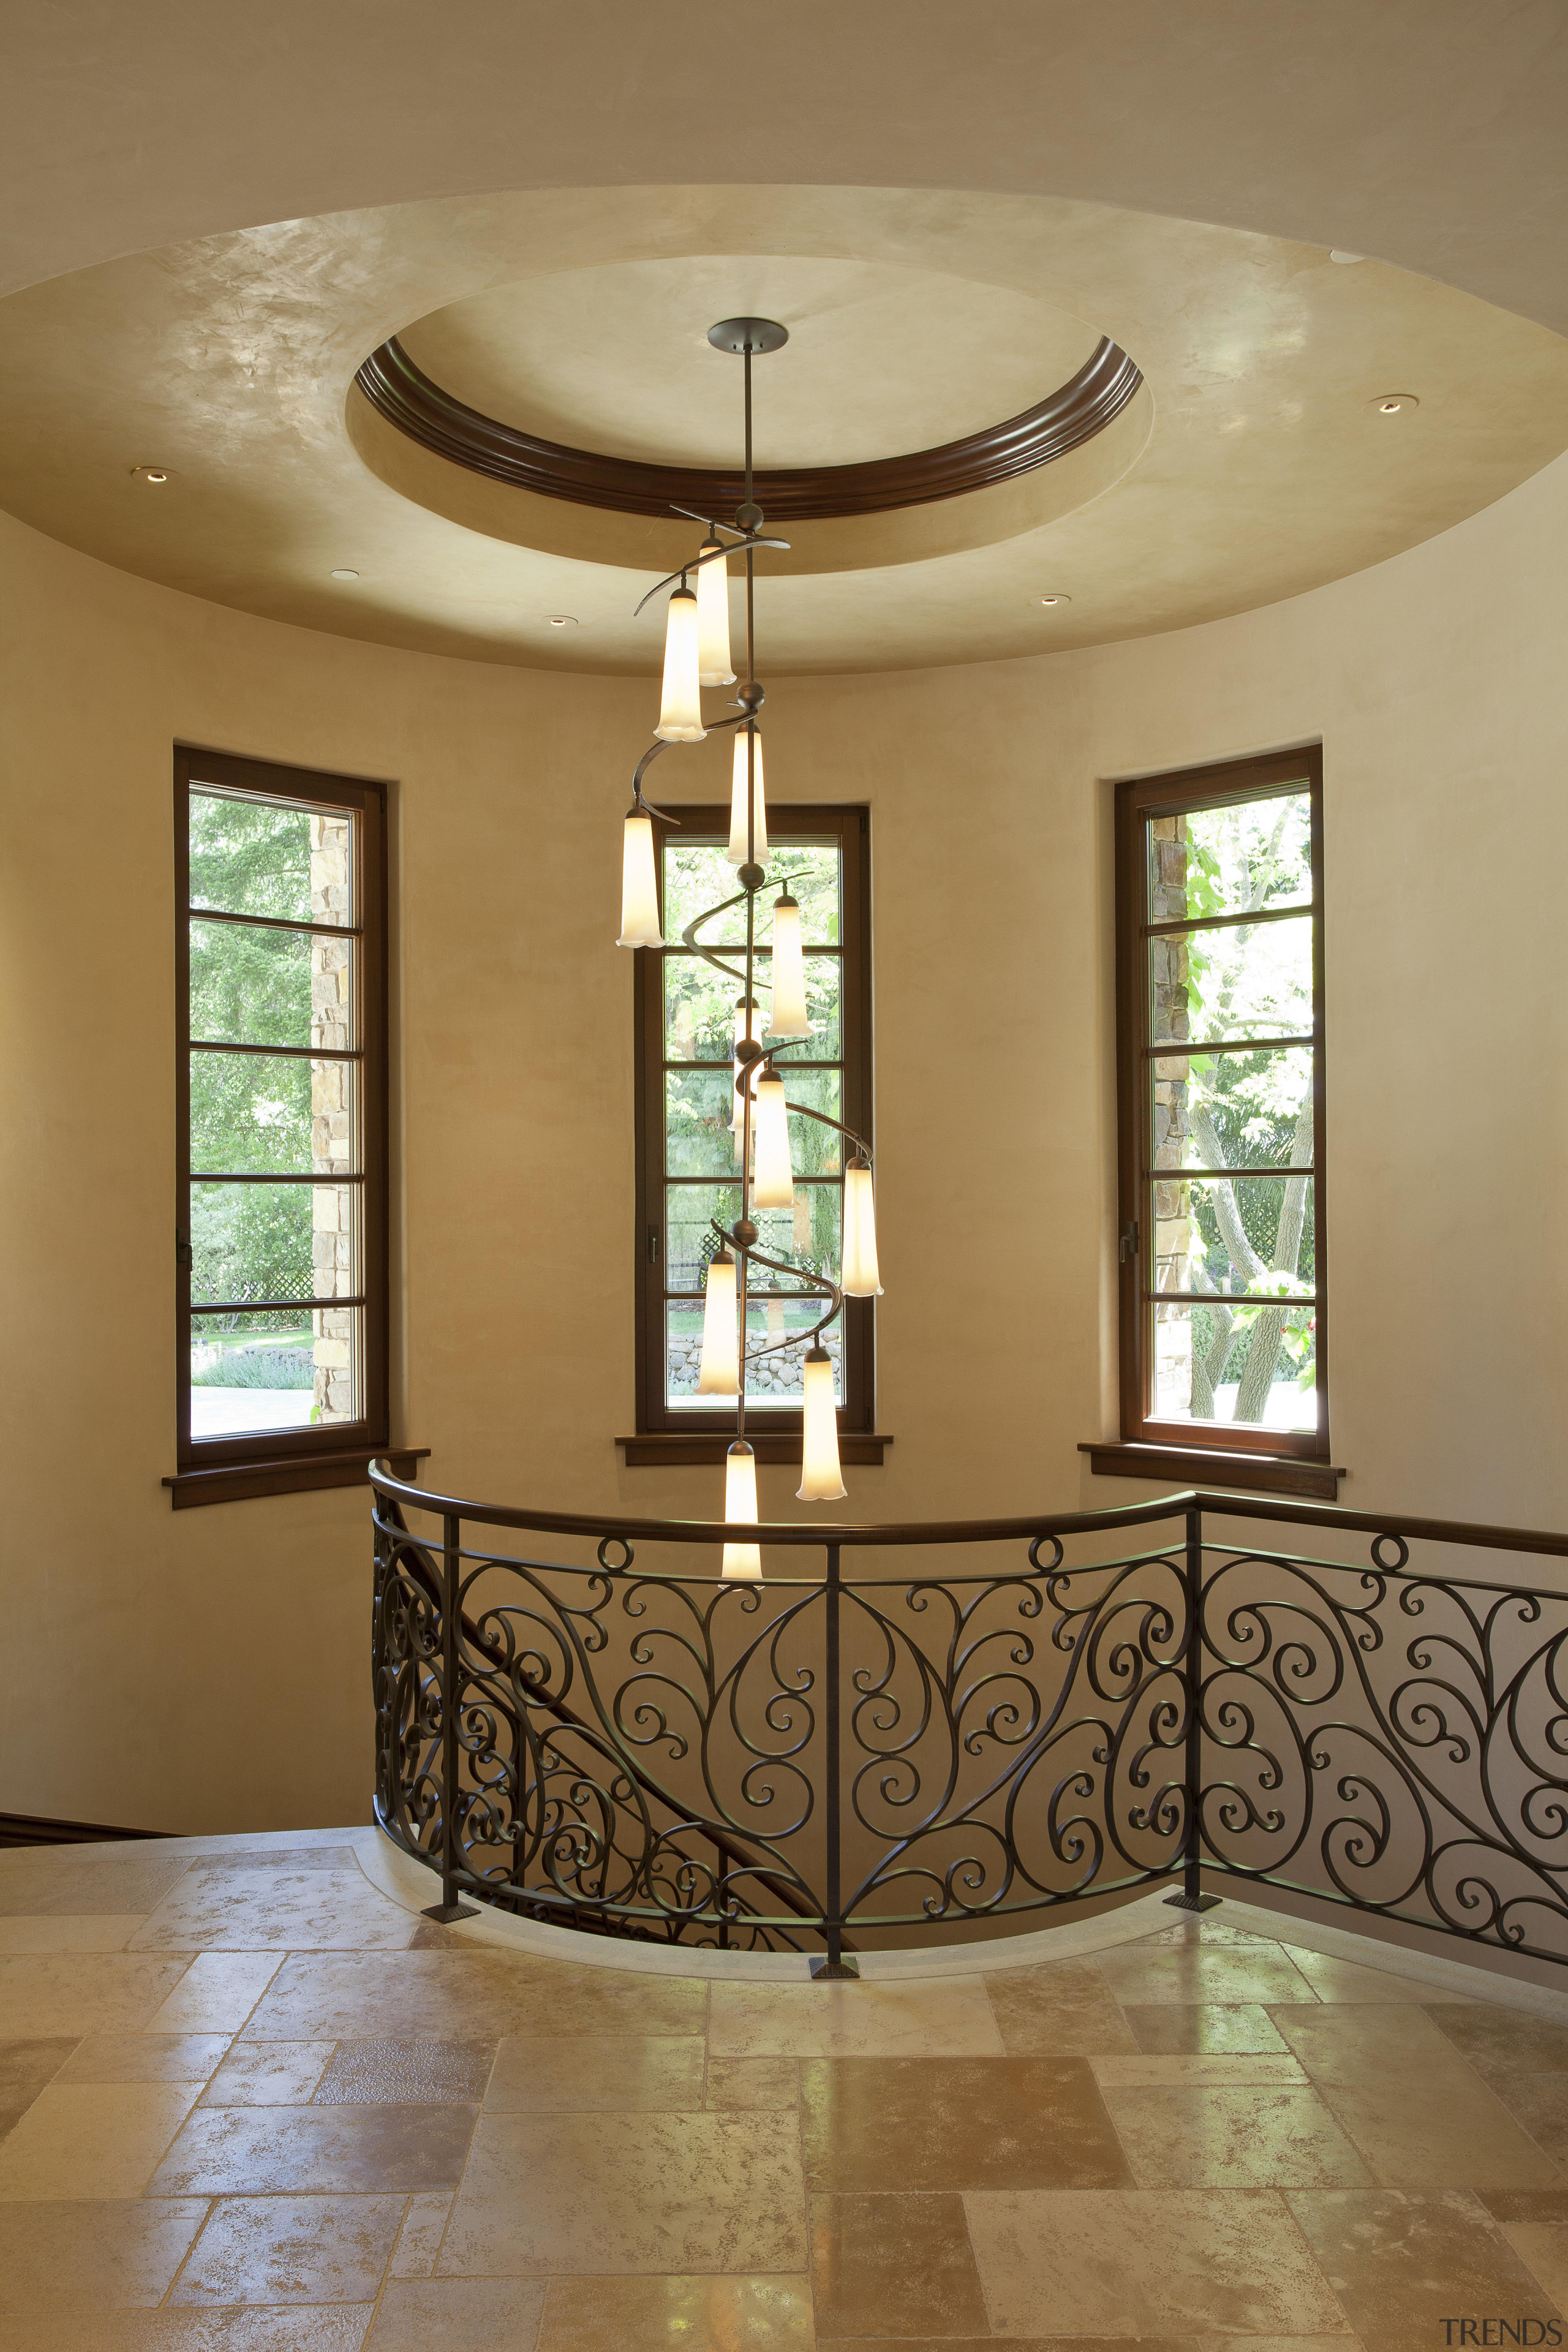 Santa Barbara-Meditteranean-style interior by Alison Whittaker ceiling, estate, floor, home, interior design, lobby, window, brown